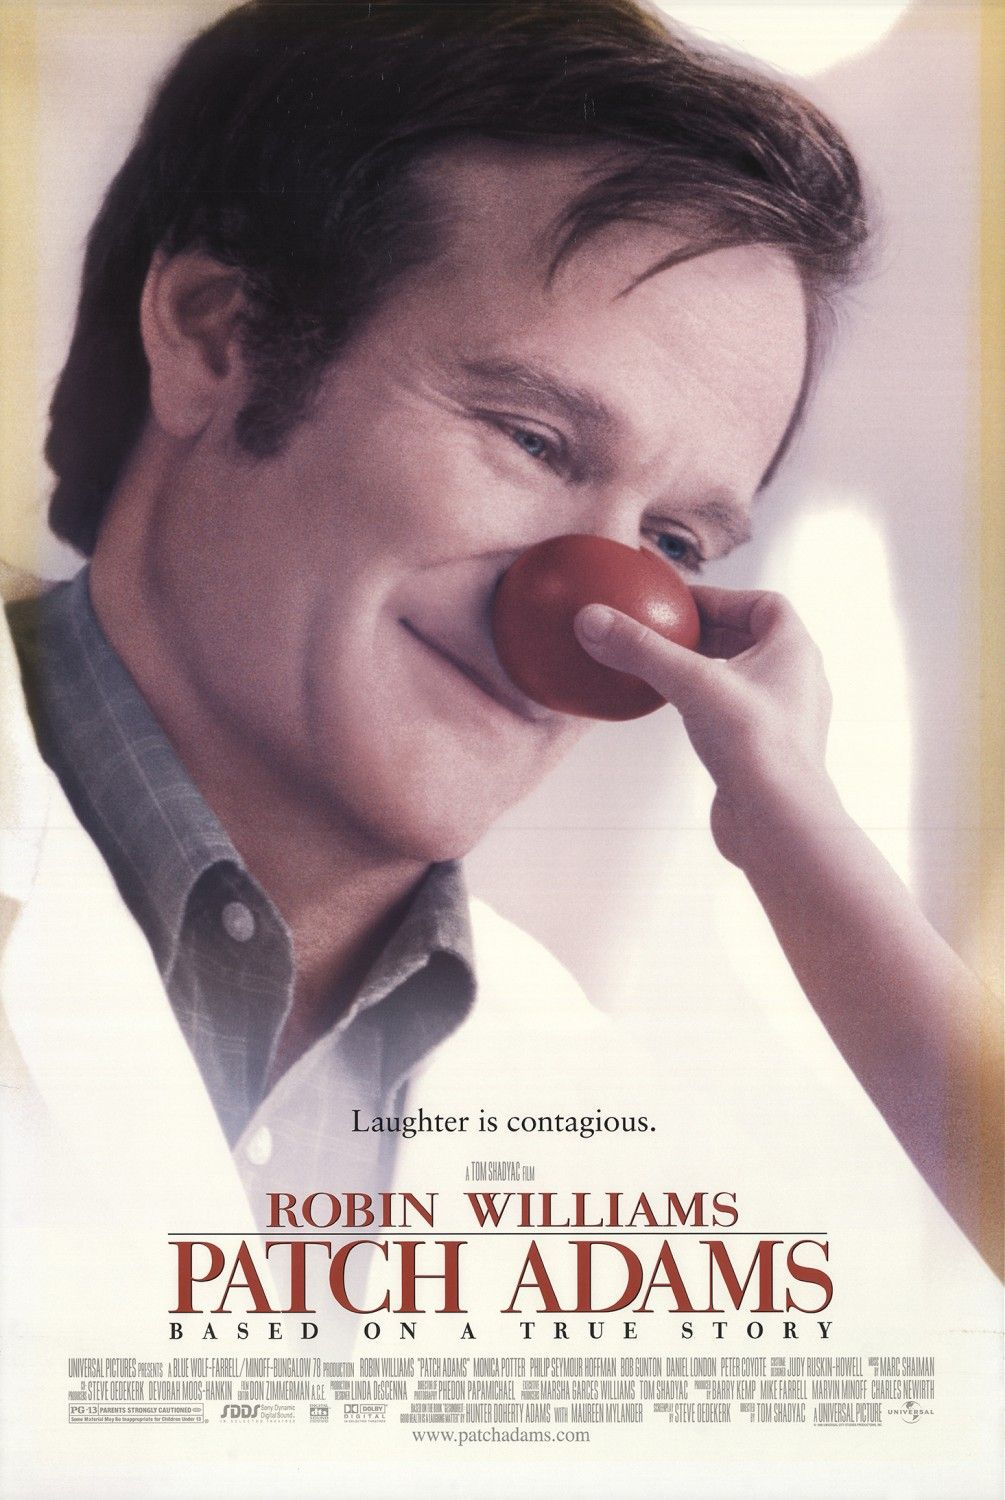 Return to the main poster page for Patch Adams (#1 of 4)